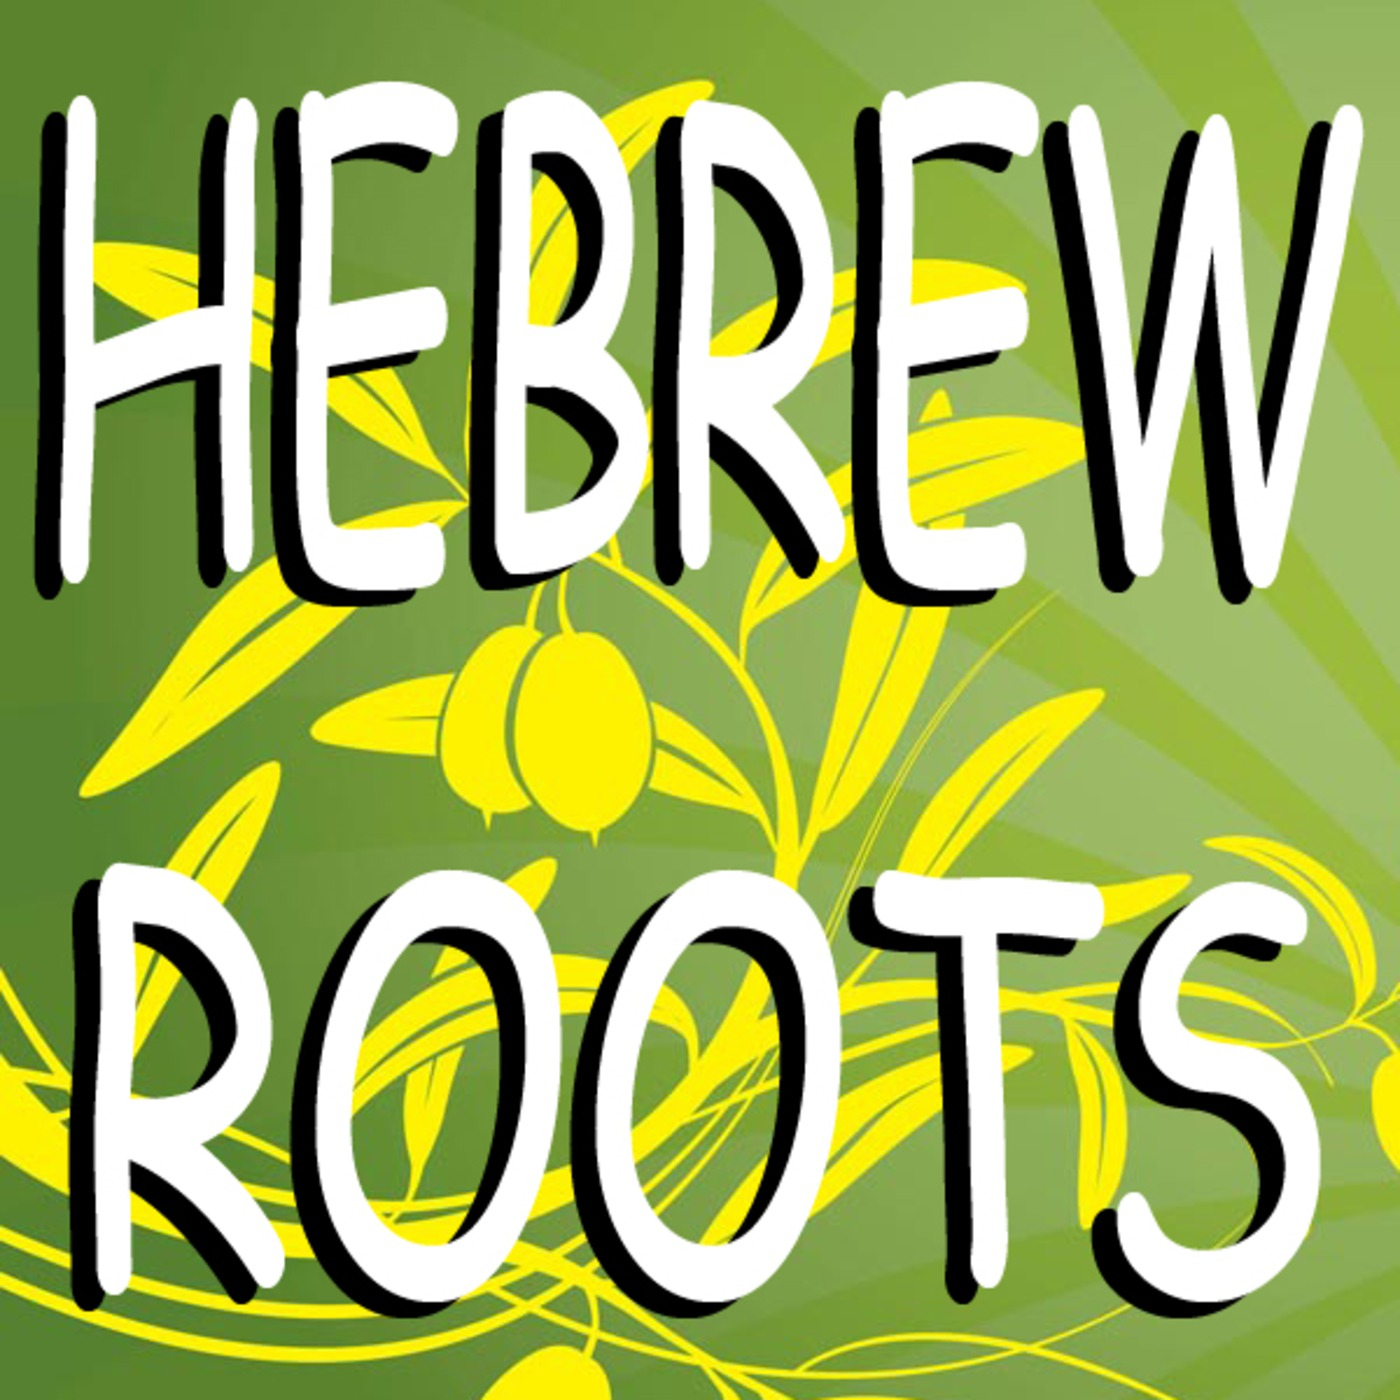 Hebrew Roots of Christianity